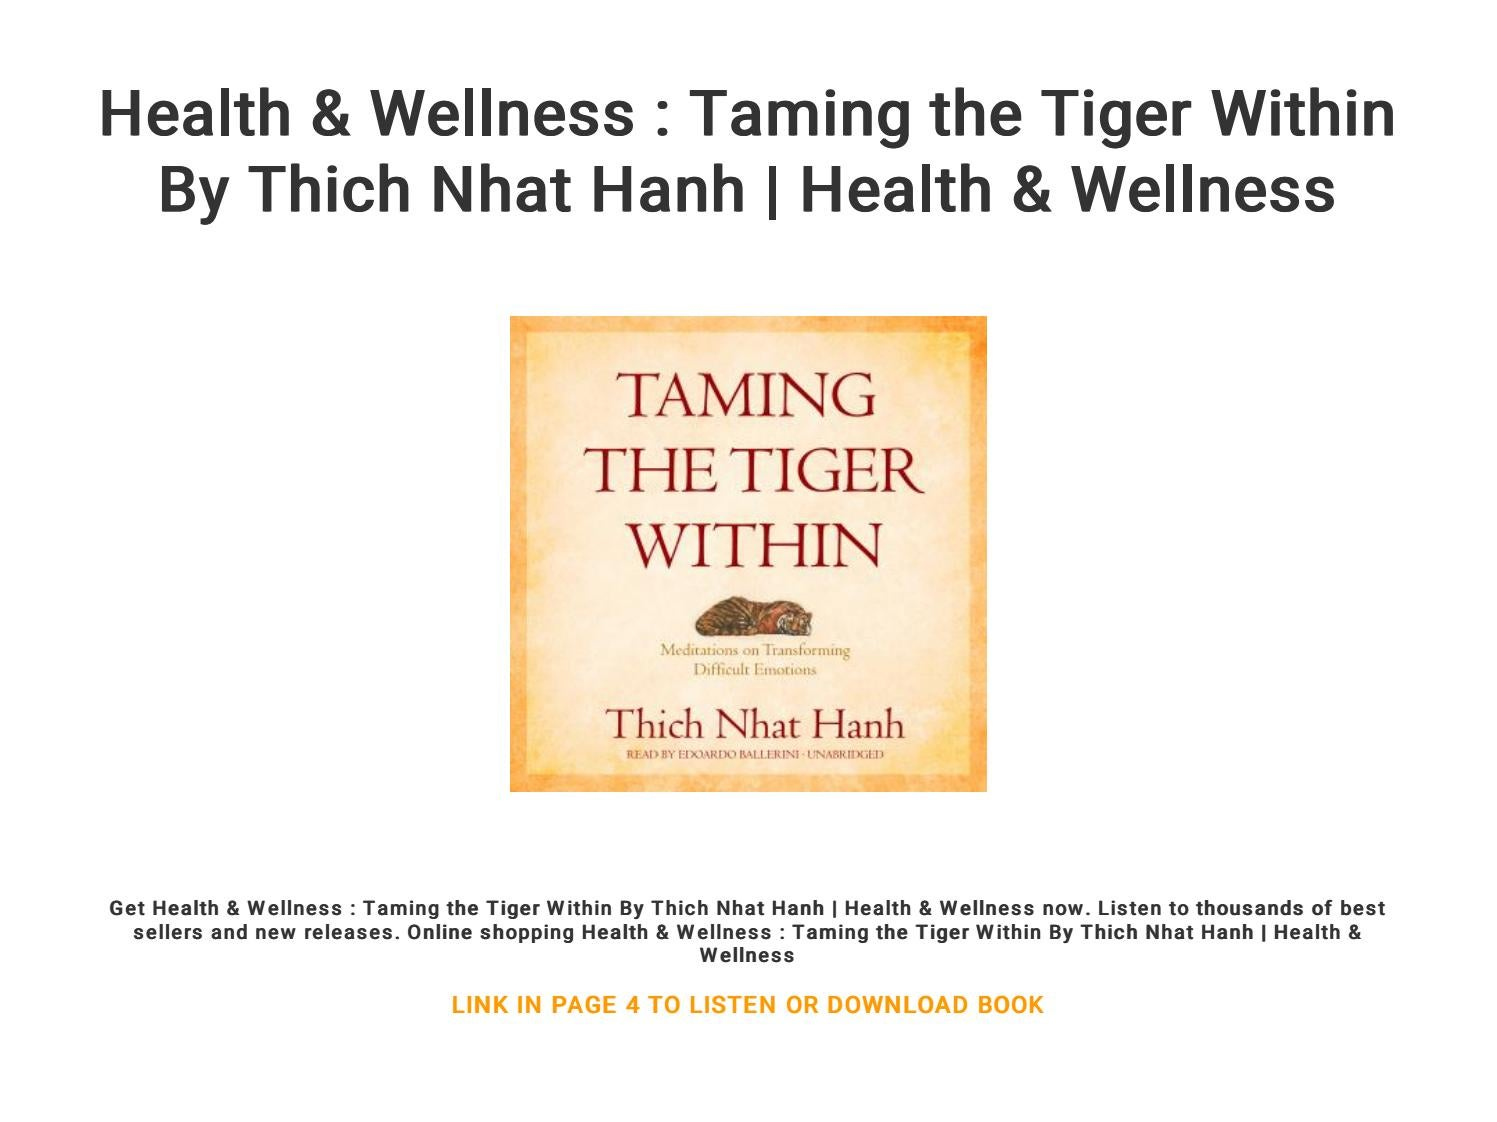 Health Wellness Taming The Tiger Within By Thich Nhat Hanh